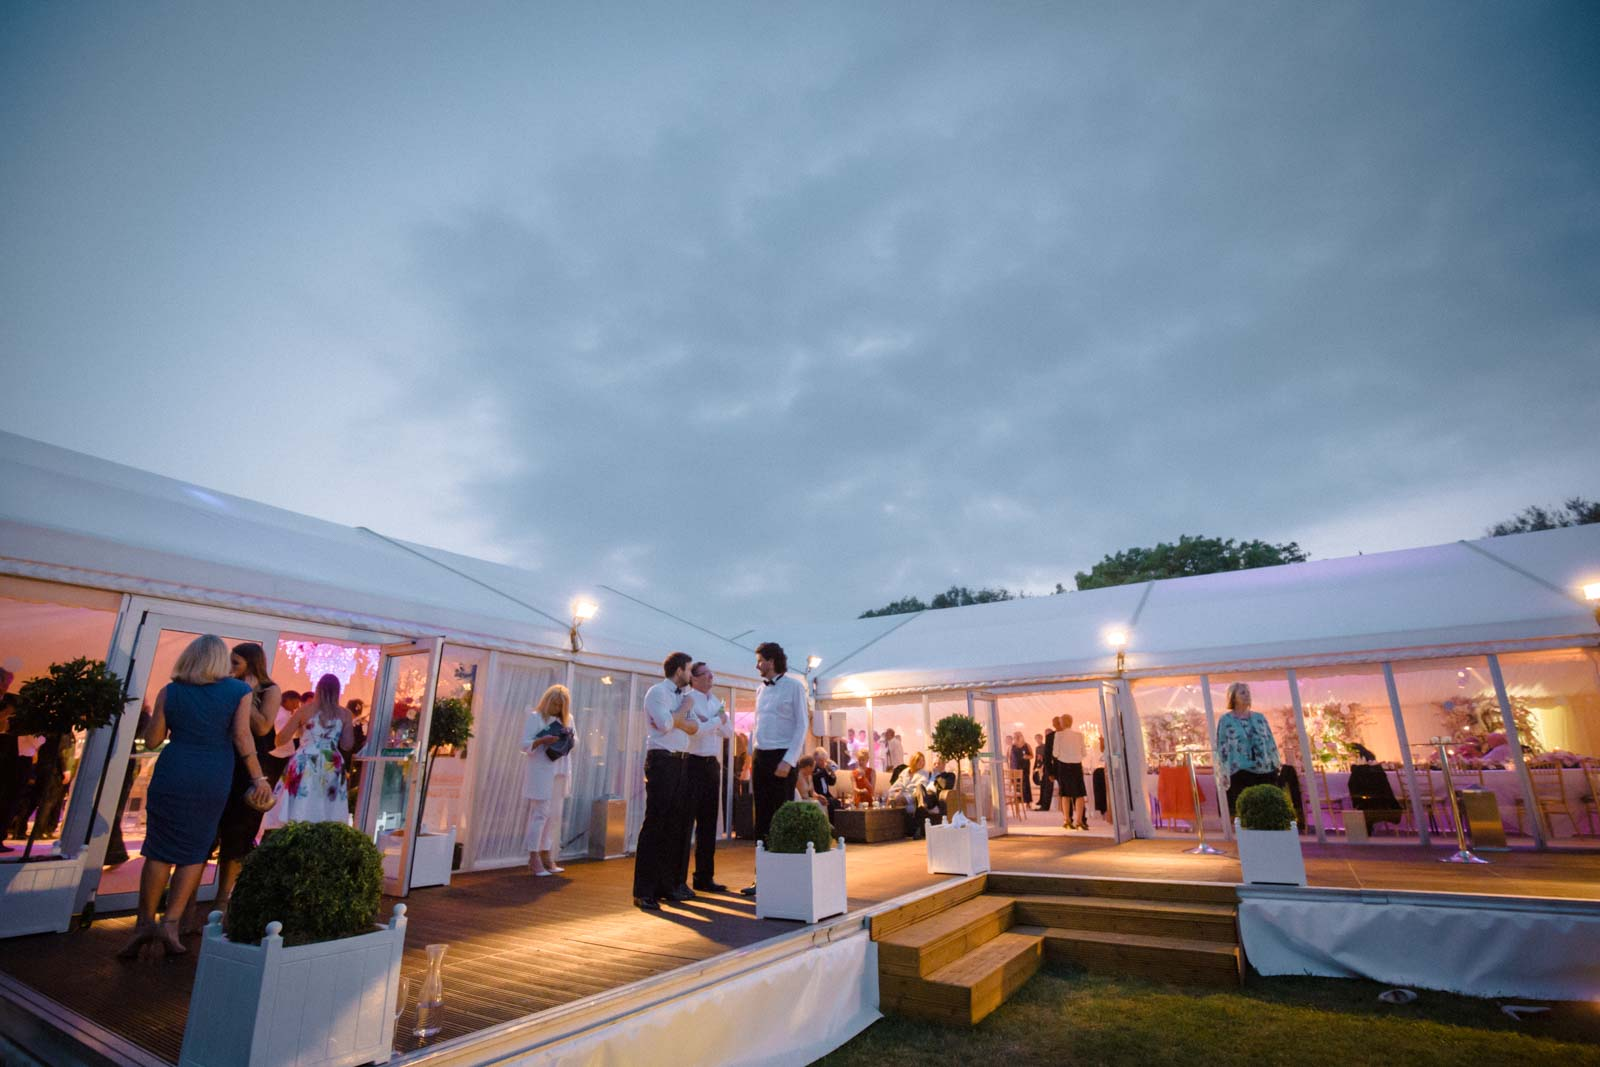 Marquee wedding photograph in the evening